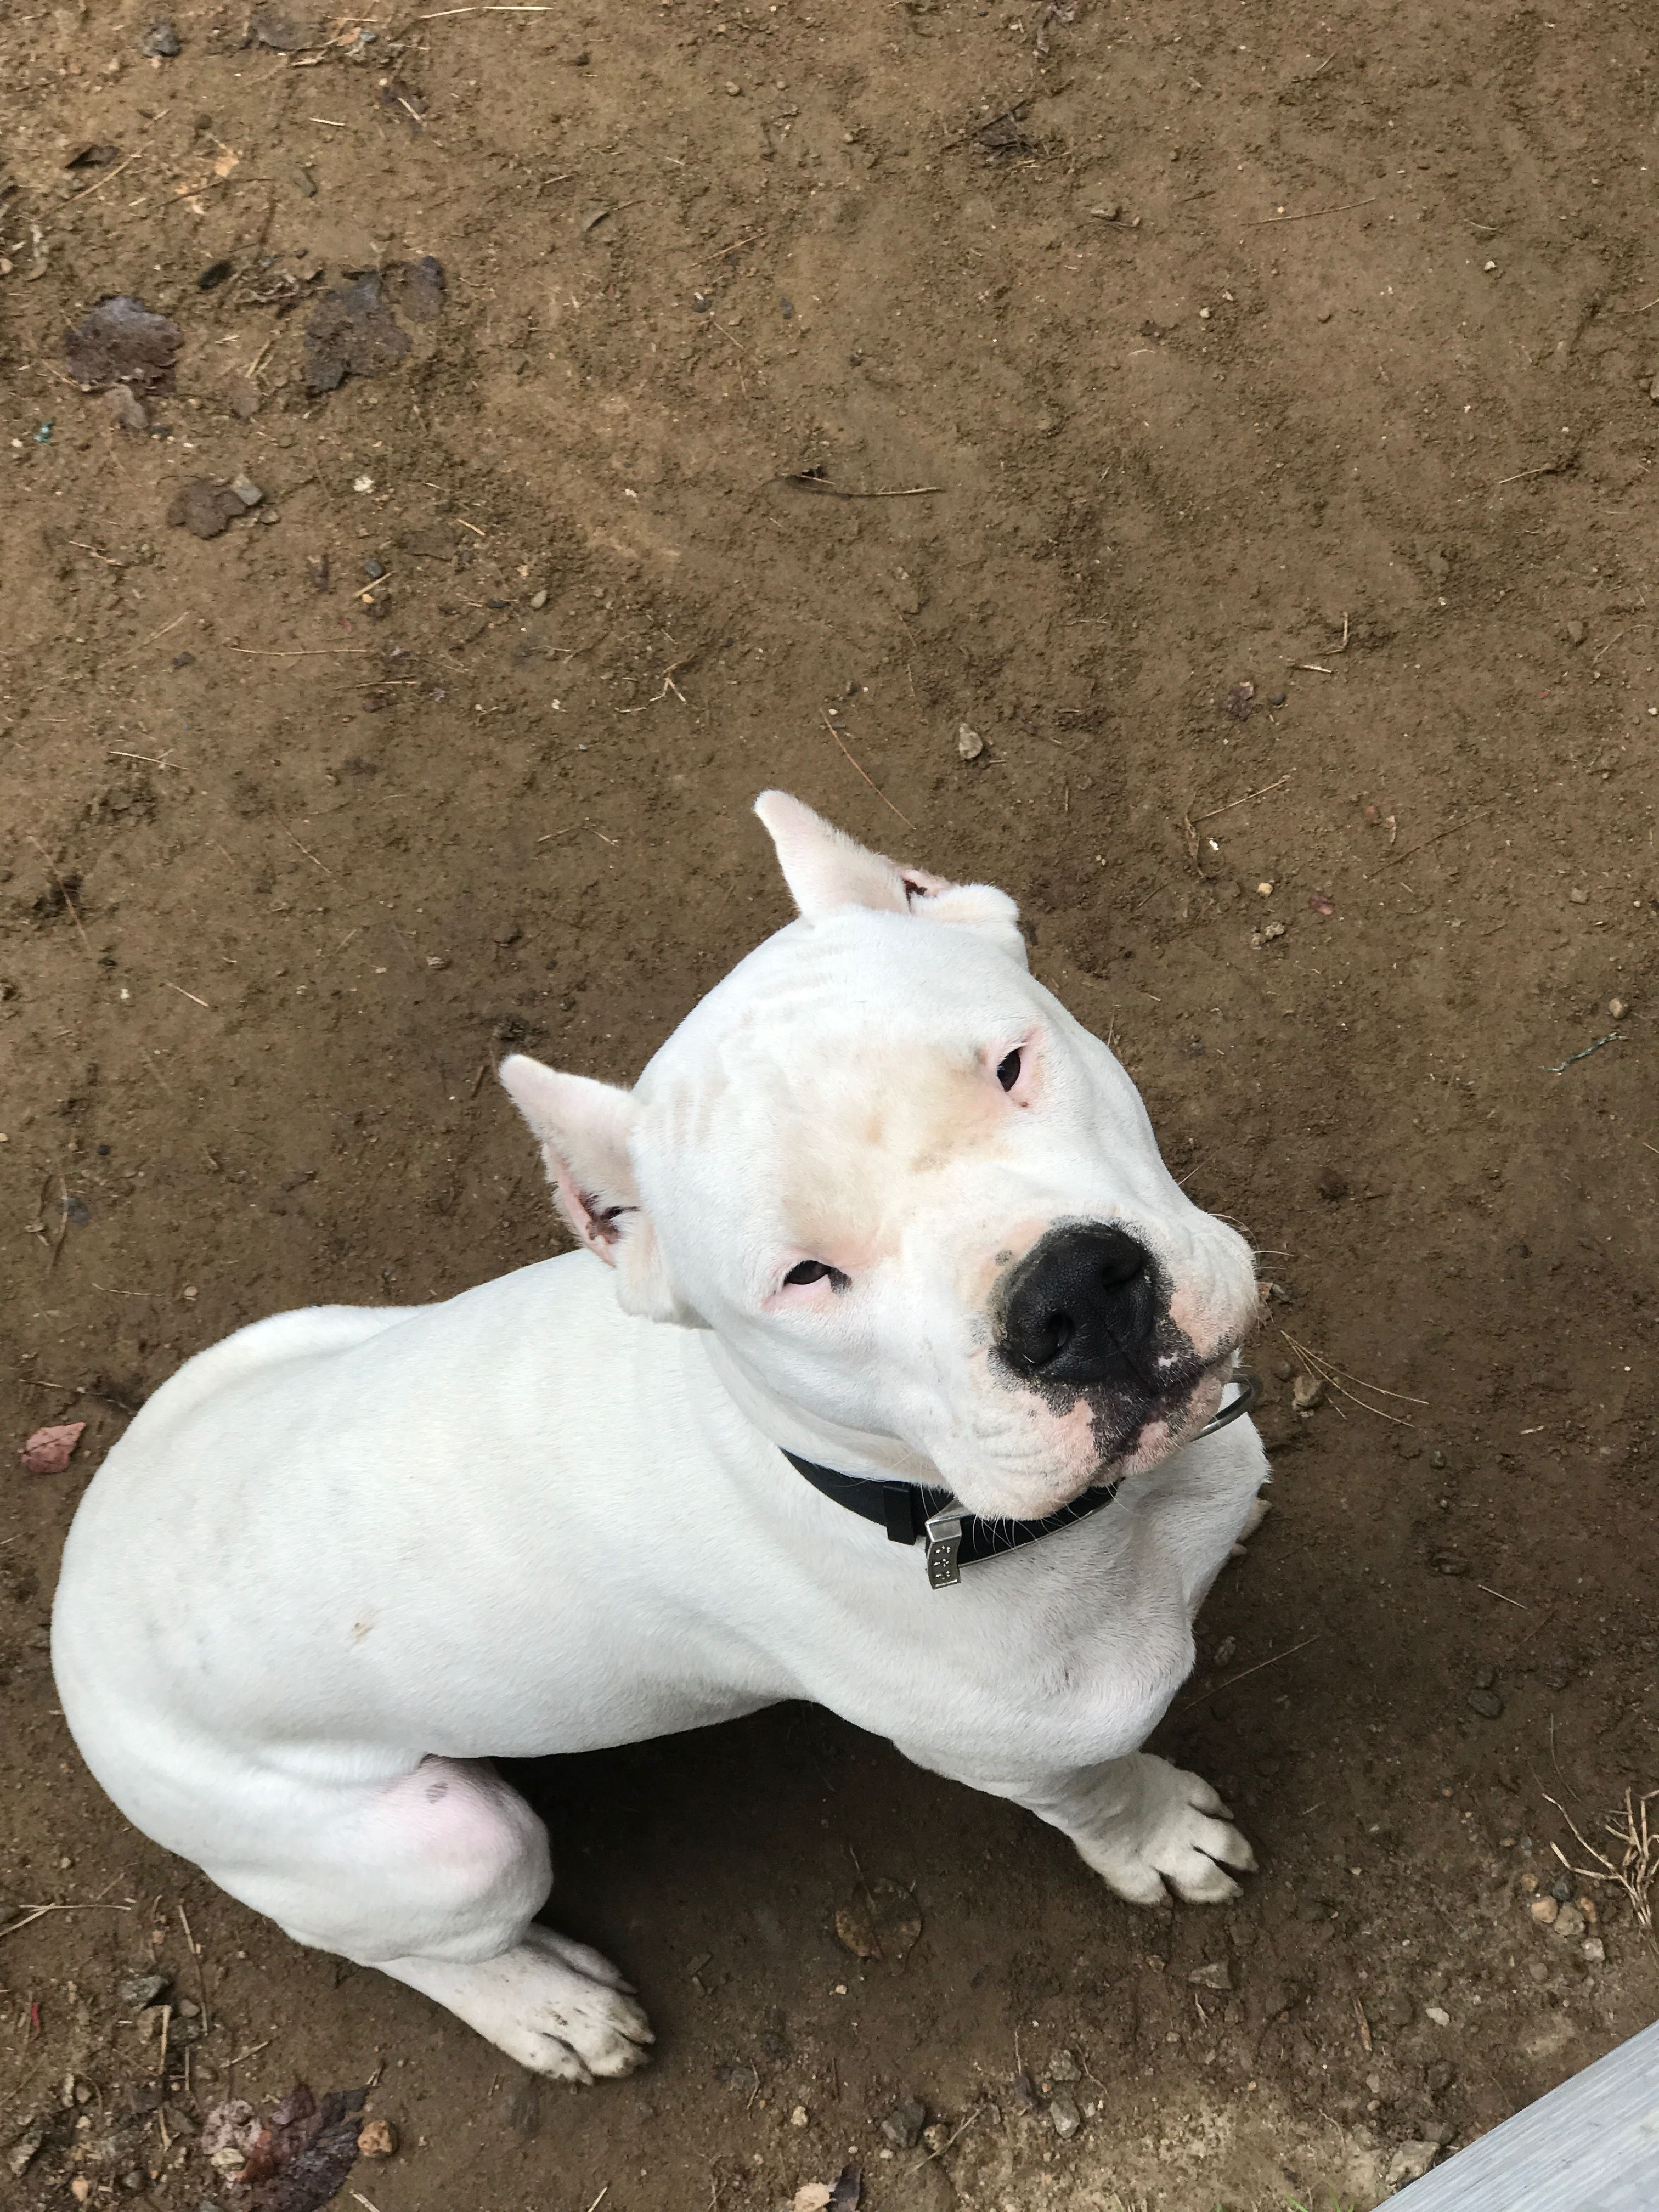 Pin By Daisy On Dogo Argentino Dog Argentino Pitbull Dog Working Dogs